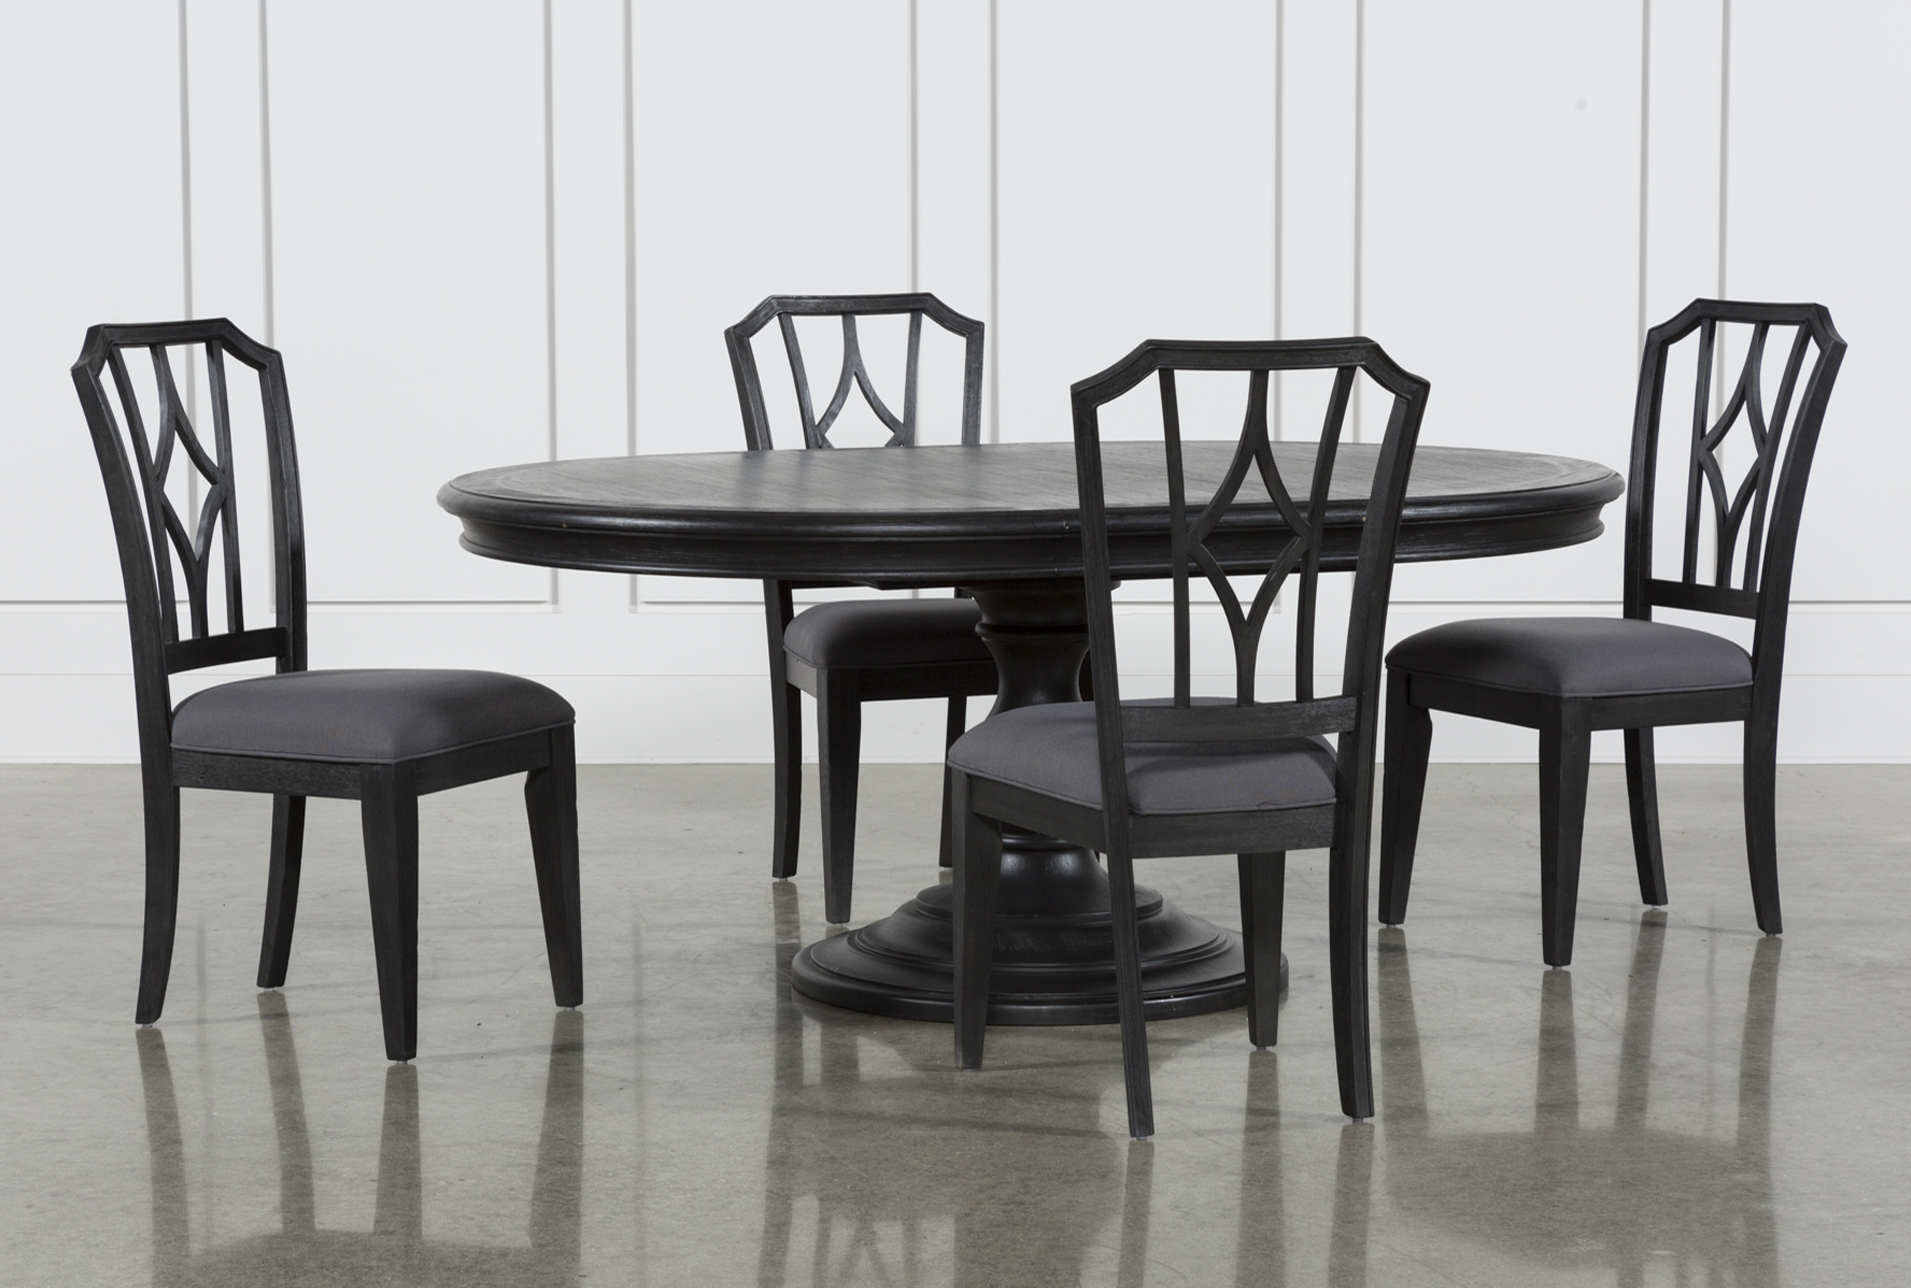 Caira Black 5 Piece Round Dining Set With Diamond Back Side Chairs (Qty: 1)  Has Been Successfully Added To Your Cart.